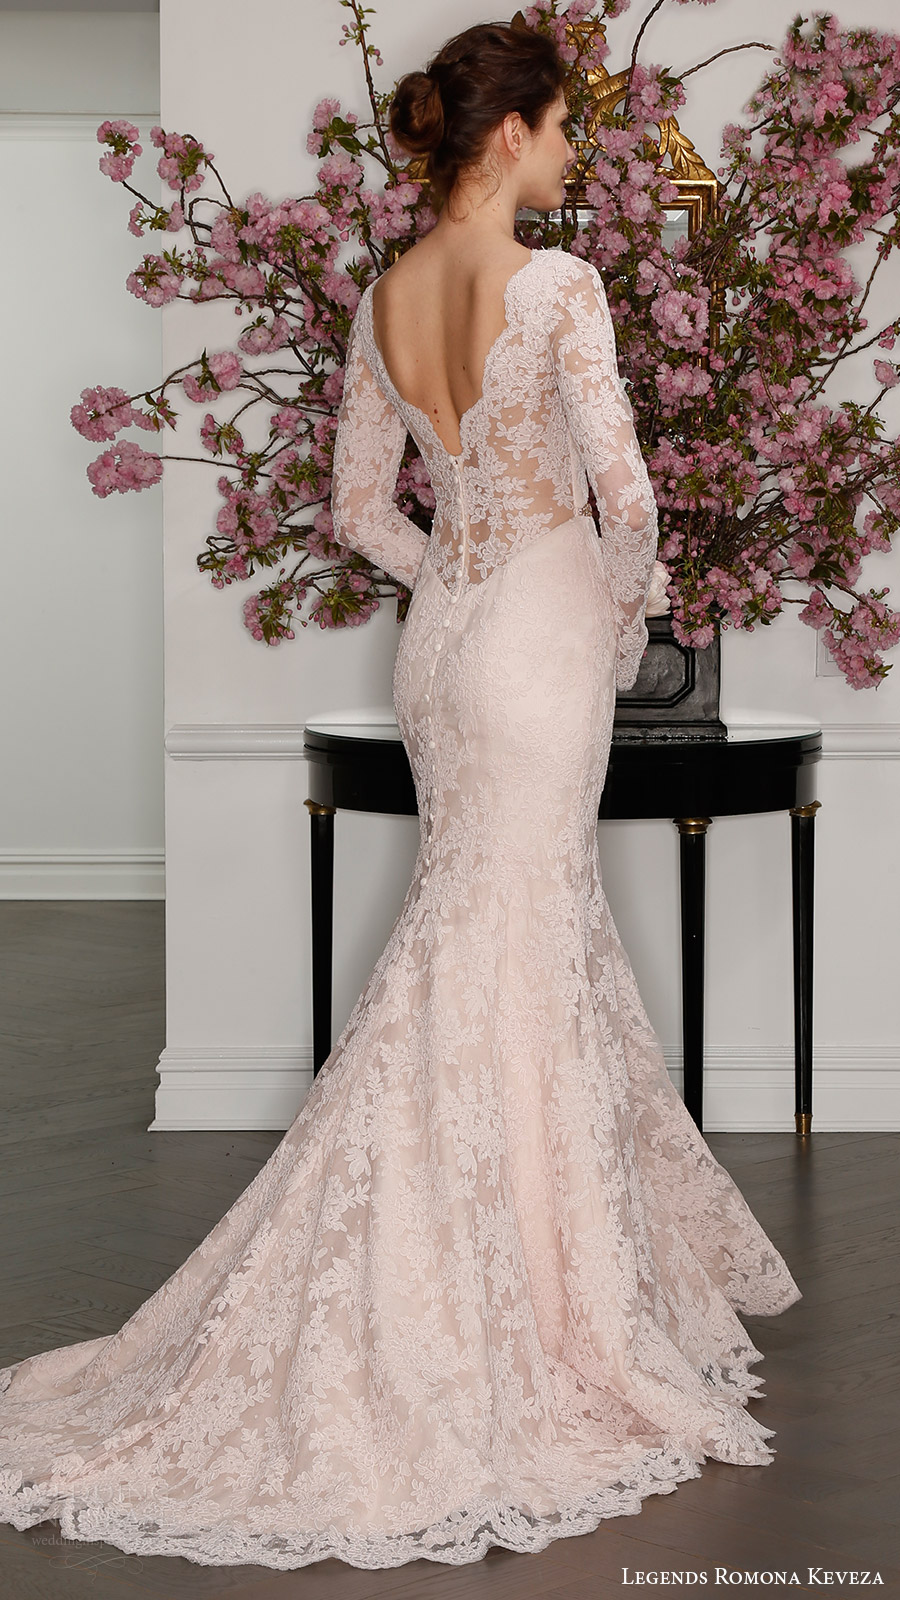 legends romona keveza bridal spring 2017 illusion long sleeves deep v lace trumpet wedding dress (l7126) bv blush color train